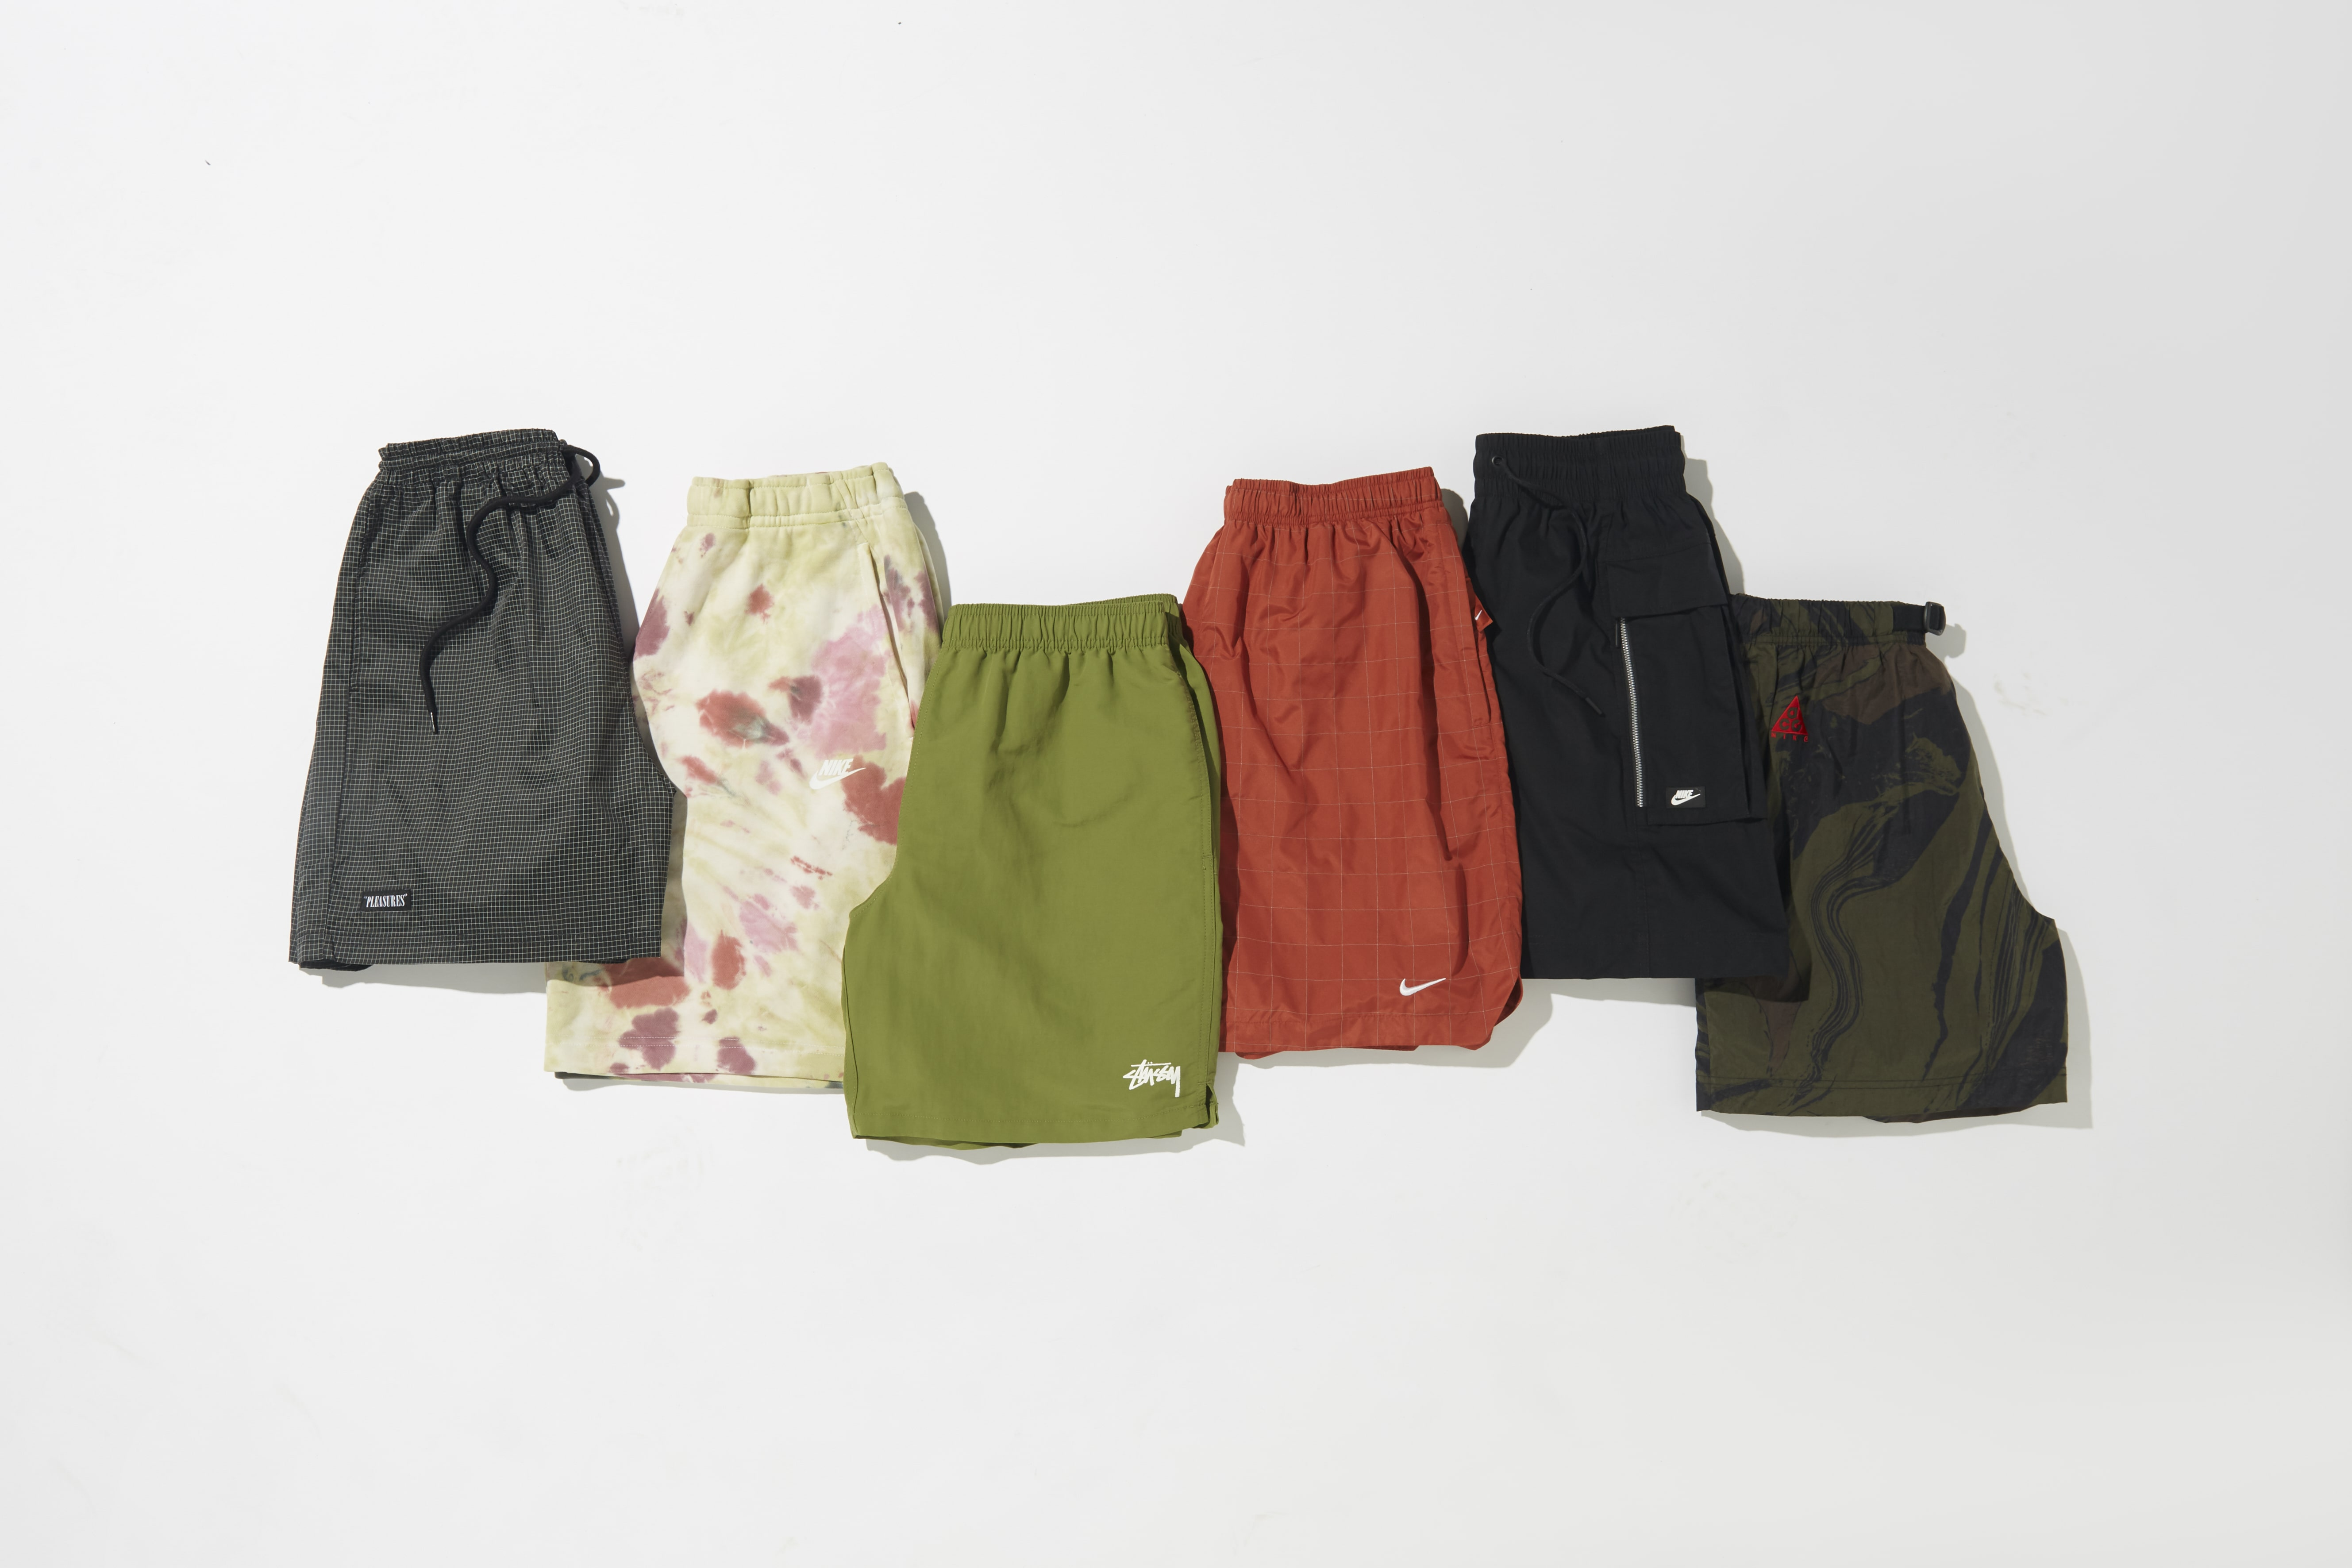 It's shorts weather, and we've got you covered